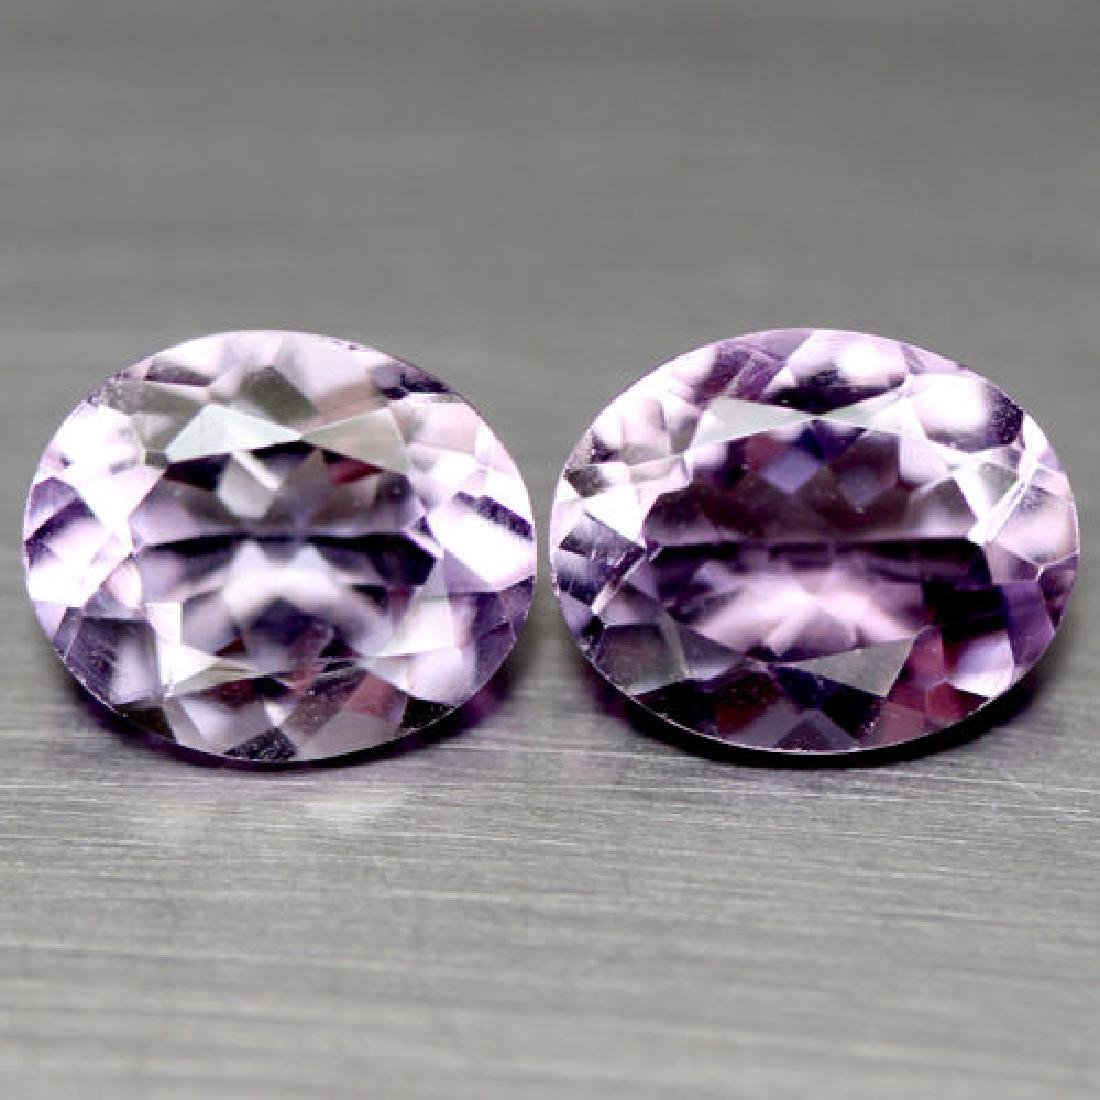 PAIR OF 4.47 CTS OF PURPLE BRAZILIAN AMETHYSTS